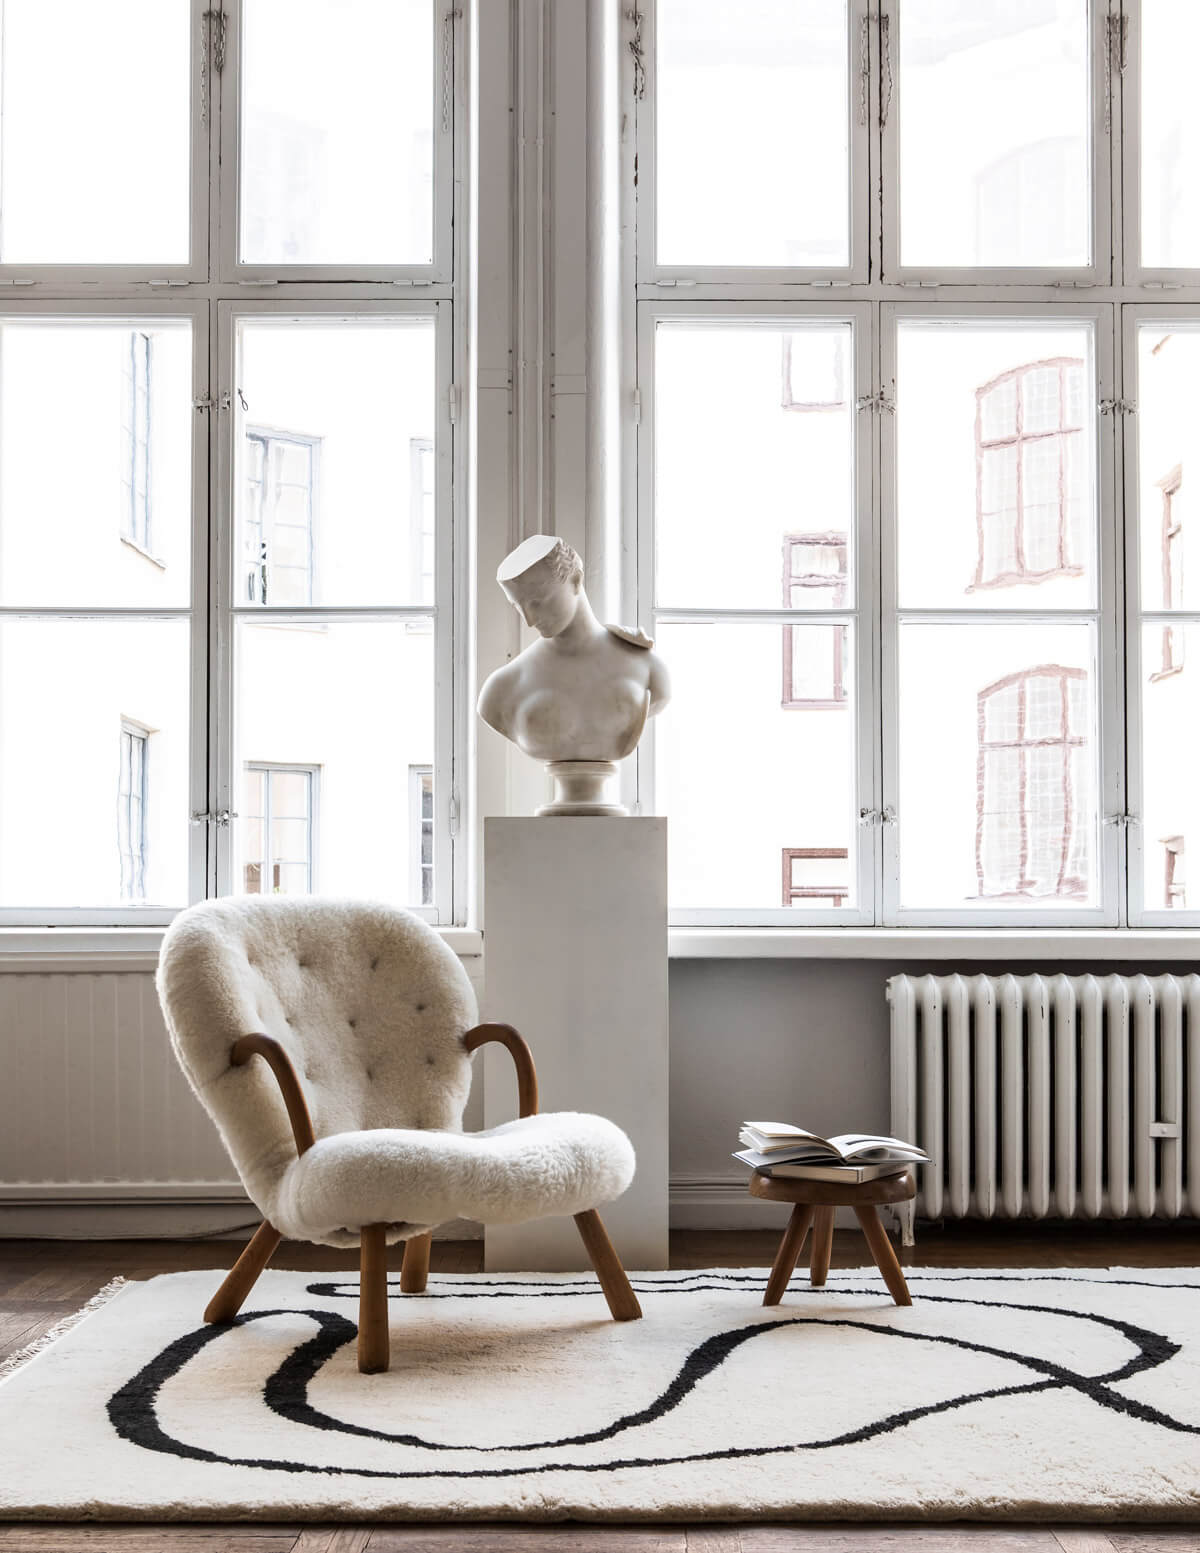 Shaggy rug Simple Object 18 in Dusty White shown in the Nordic Knots atelier. Styled with a sheep fur armchair and marble bust.